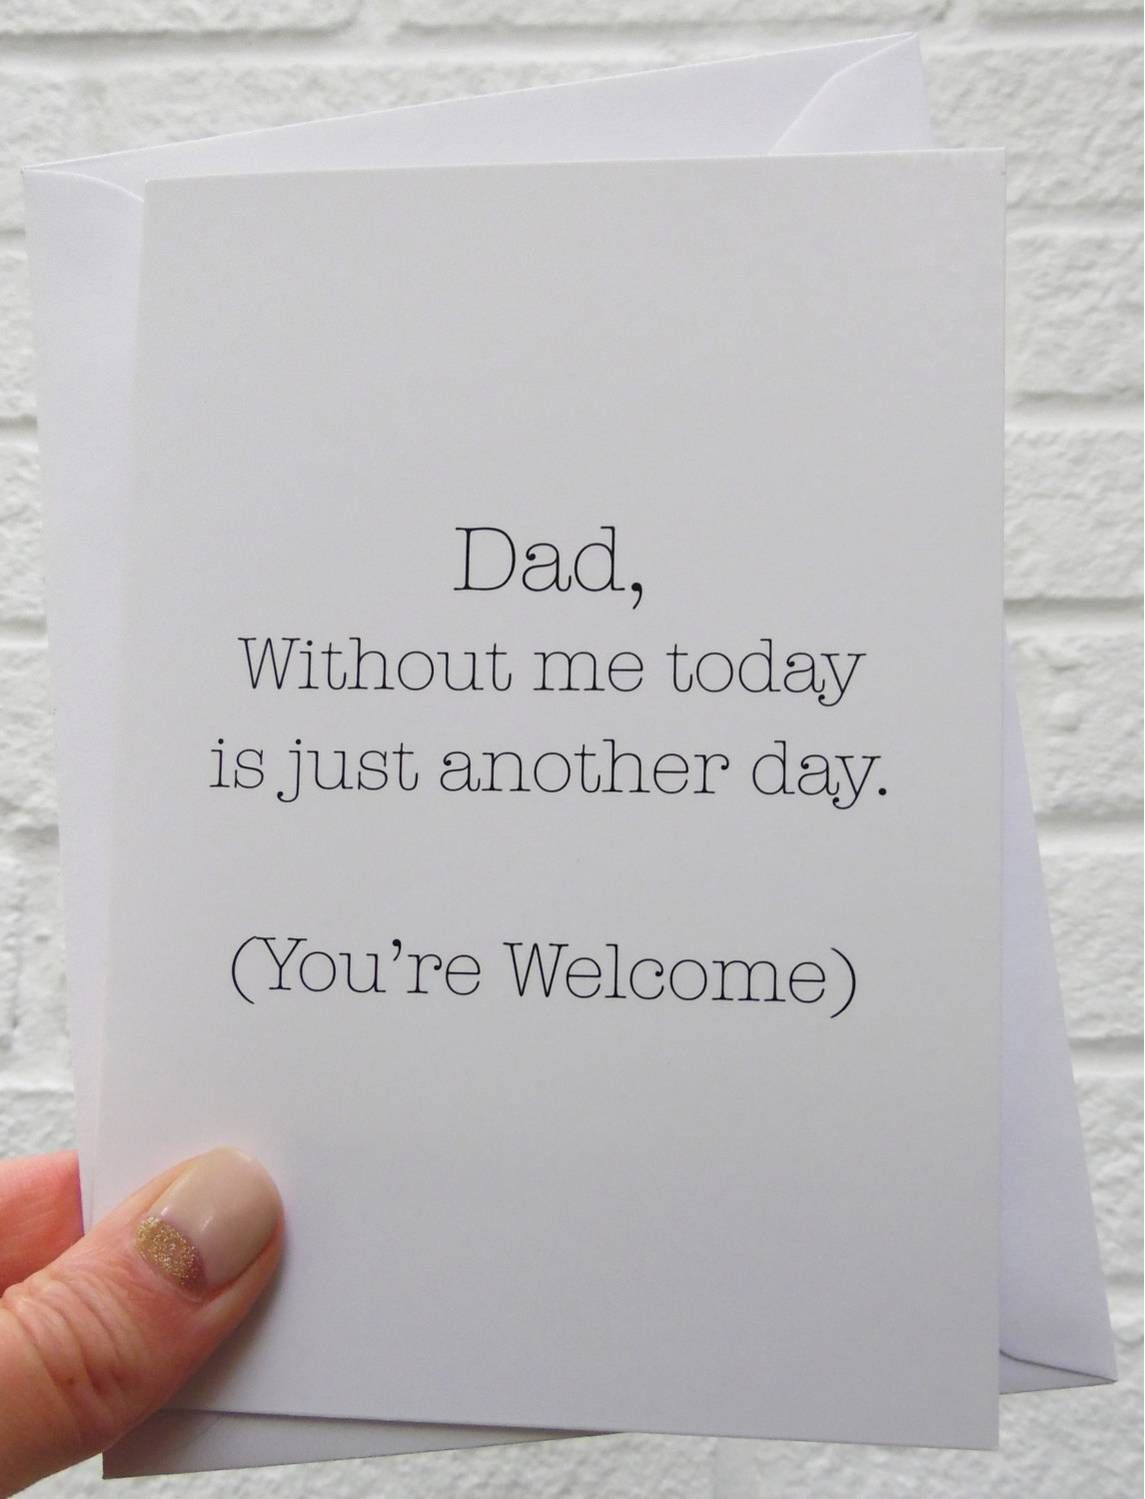 Funny Father's Day Cards That Are Better Than Dad Jokes clever fathers day gifts, daddy gifts, fathers day crafts diy Father's Day Cards That Are Better Than Dad Jokes